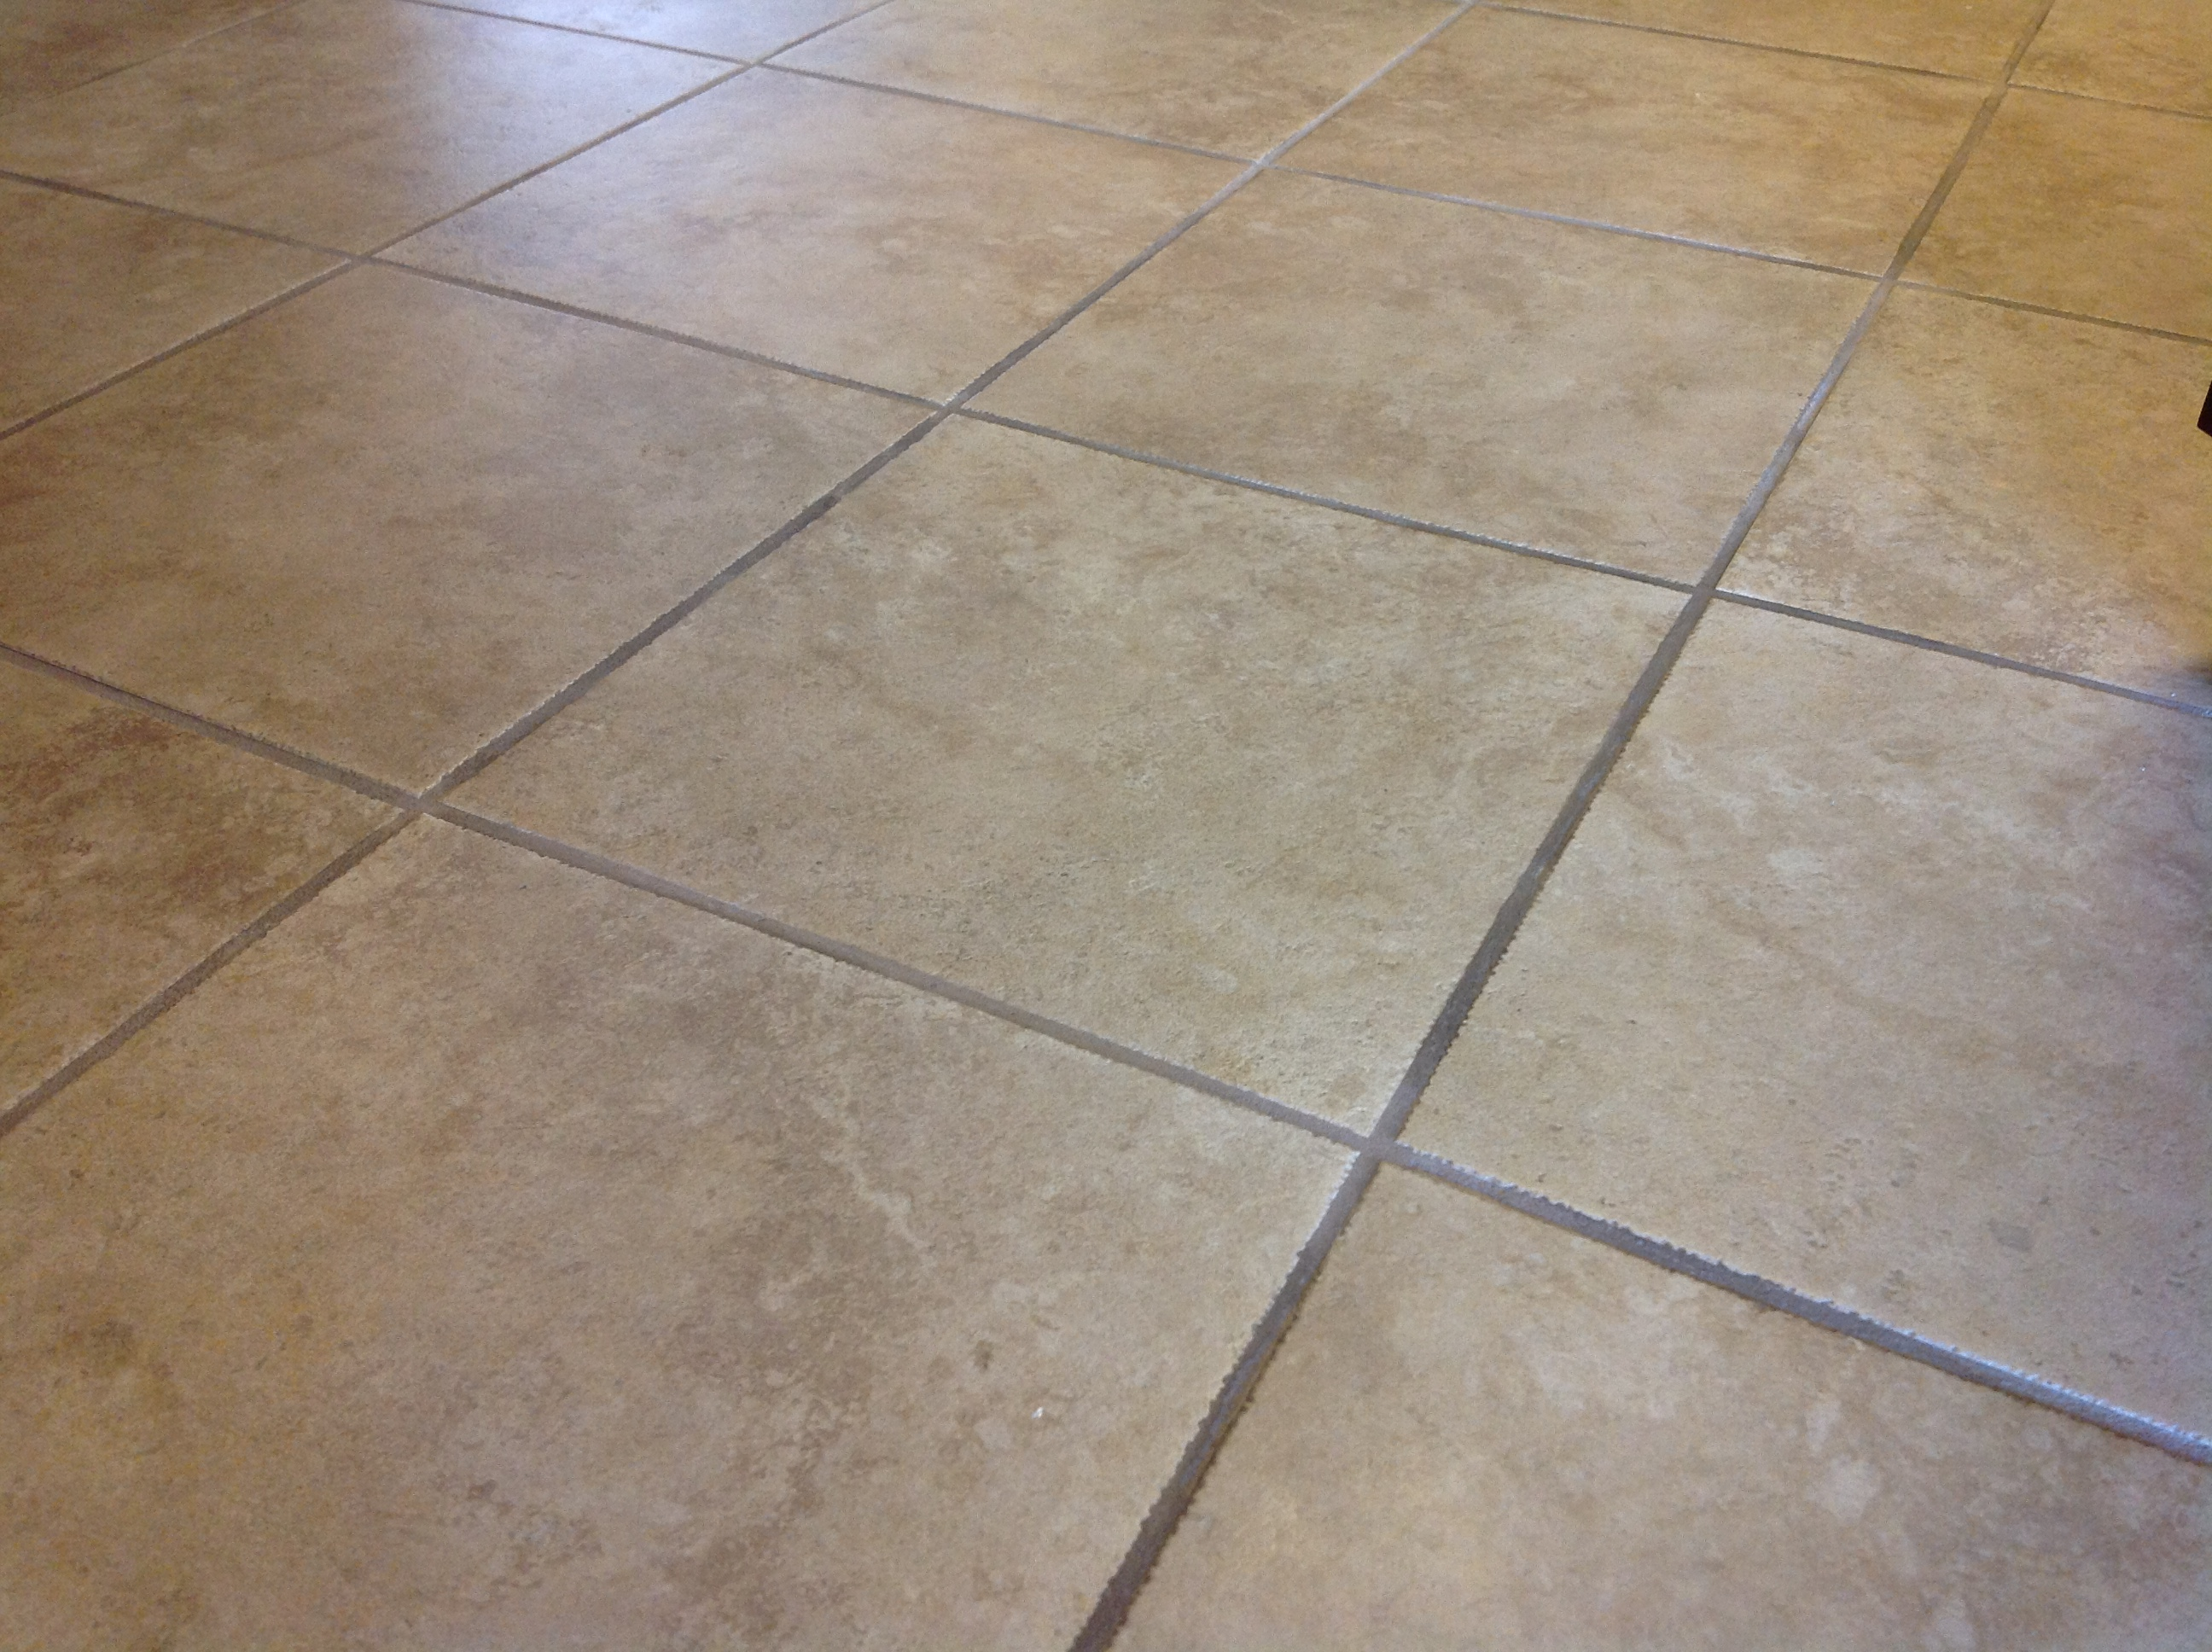 Porcelain tile carpet glue removal california tile restoration porcelain tile dirty grout porcelain tile sacramento dailygadgetfo Image collections